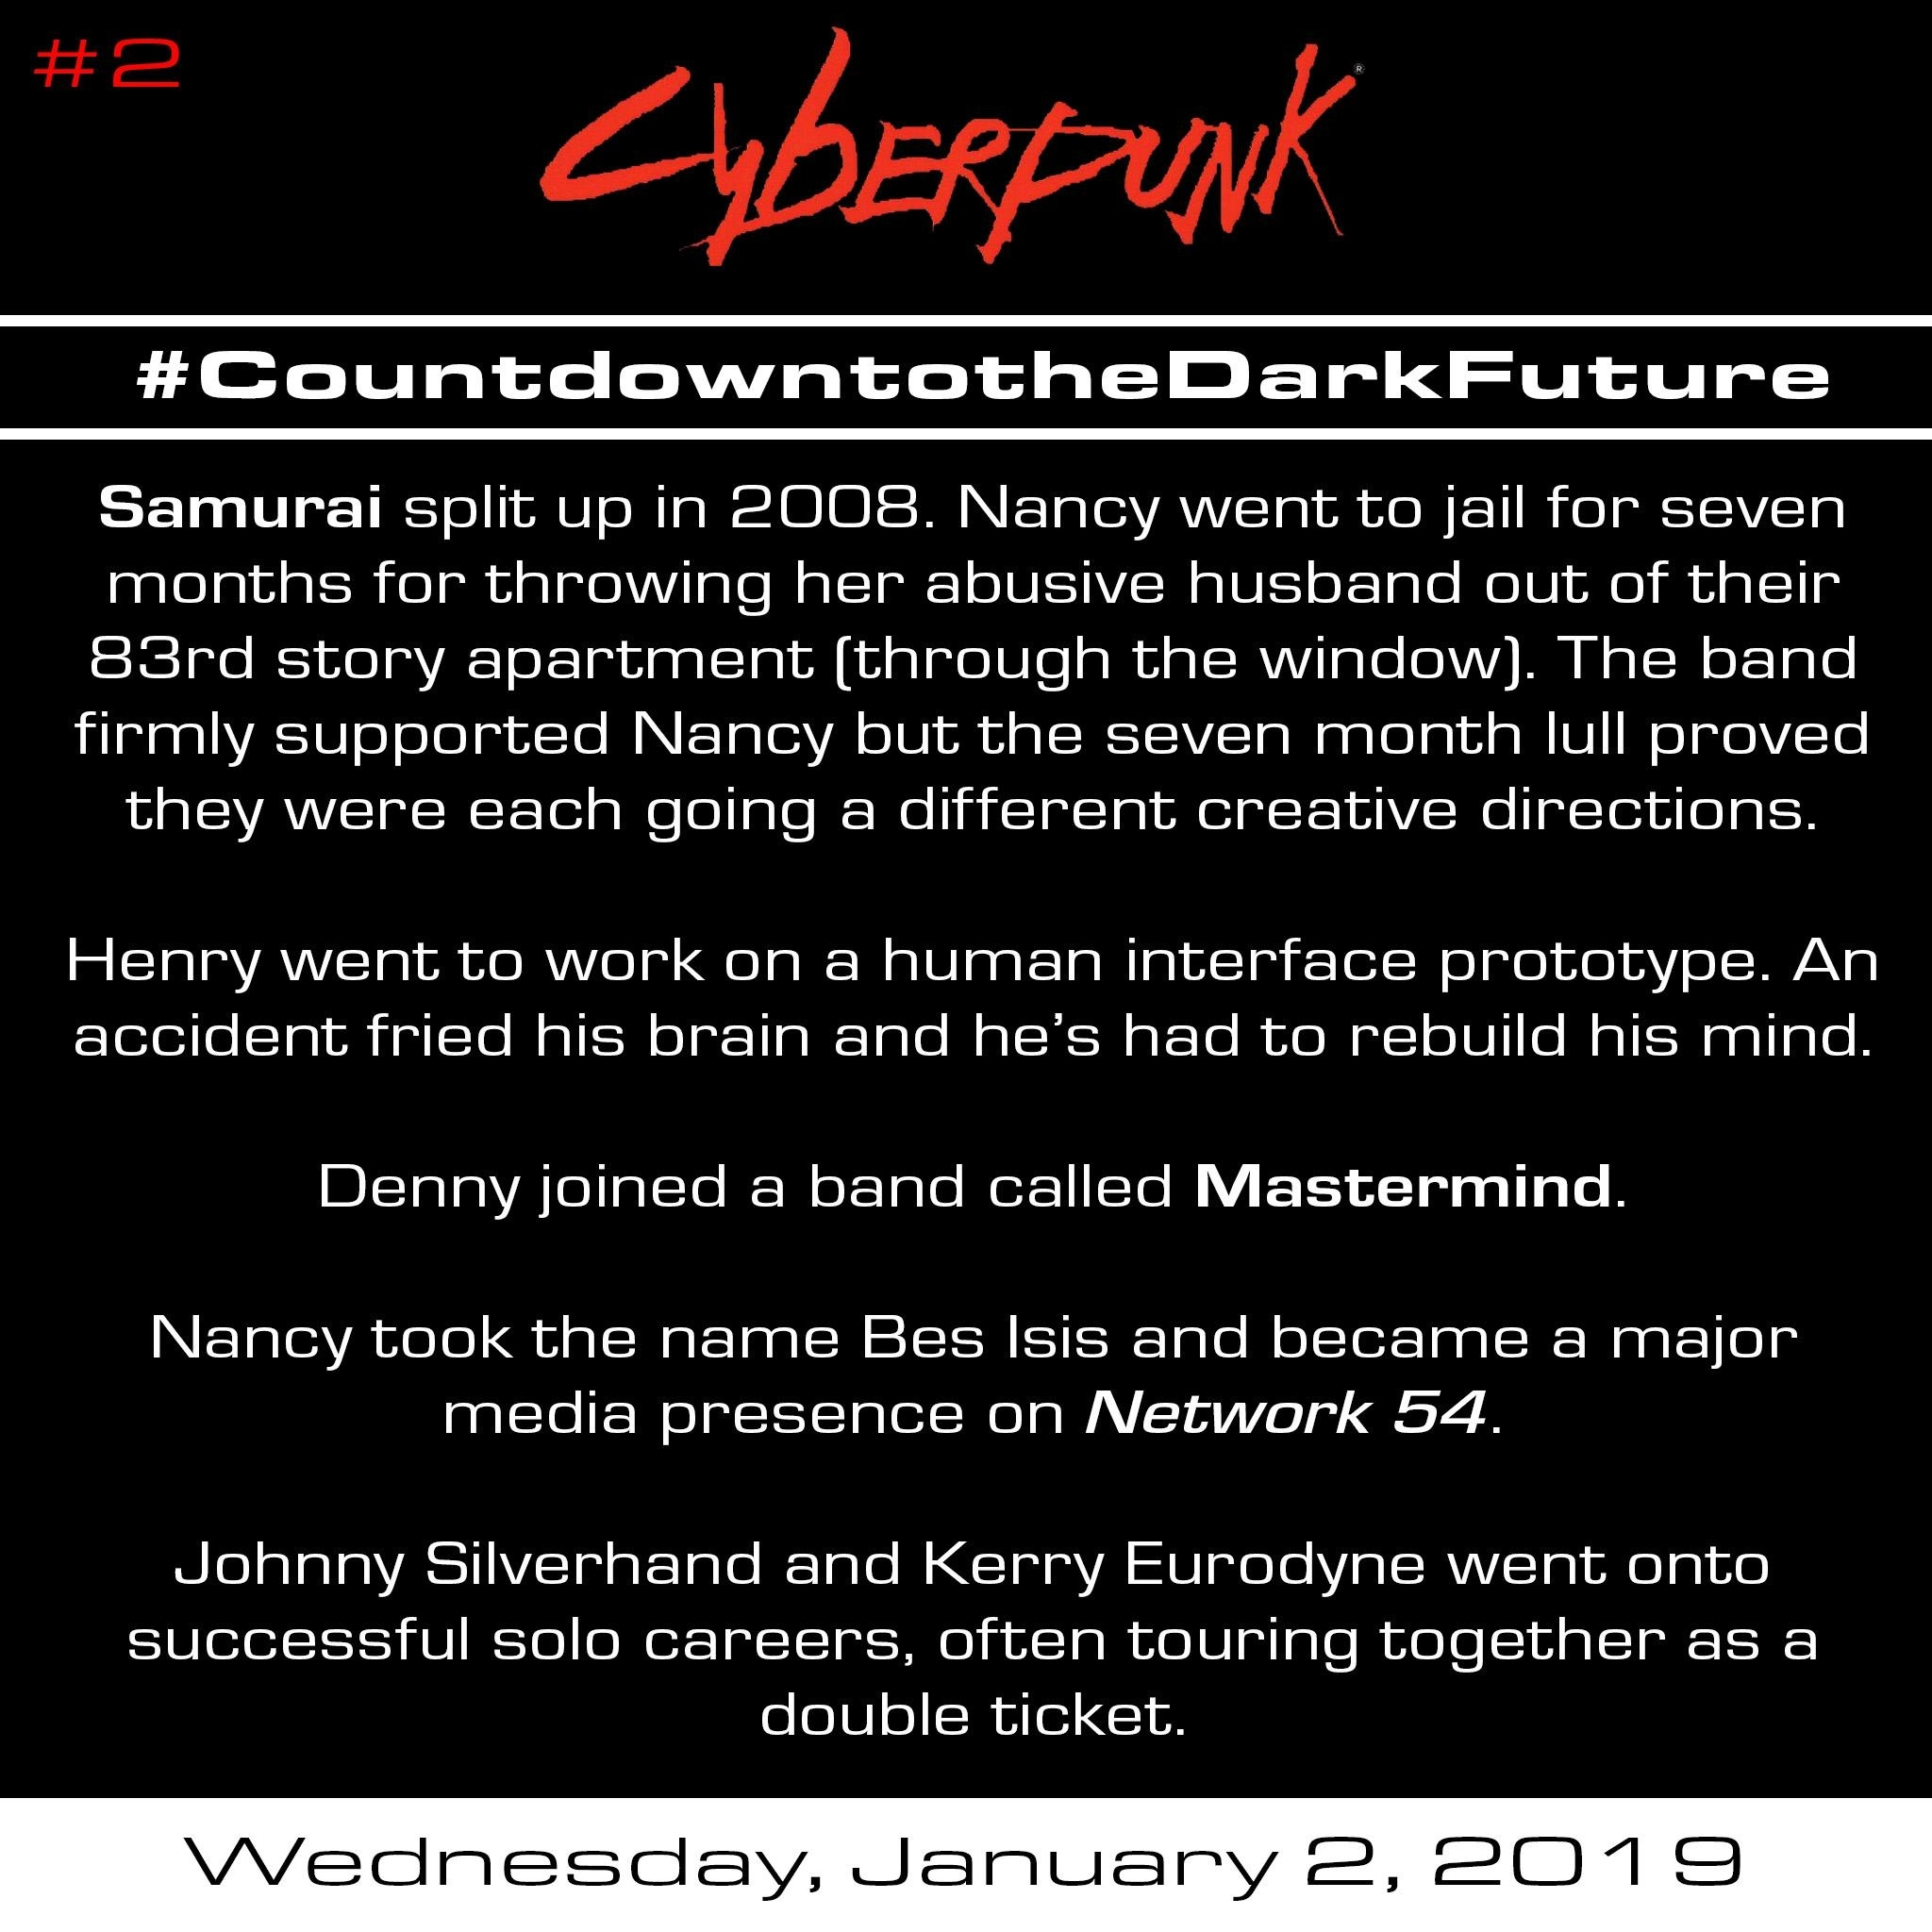 Countdown To The Dark Future (365 Days Of Cyberpunk 2020 Facts) #2_Countdown Calendar 365 Days